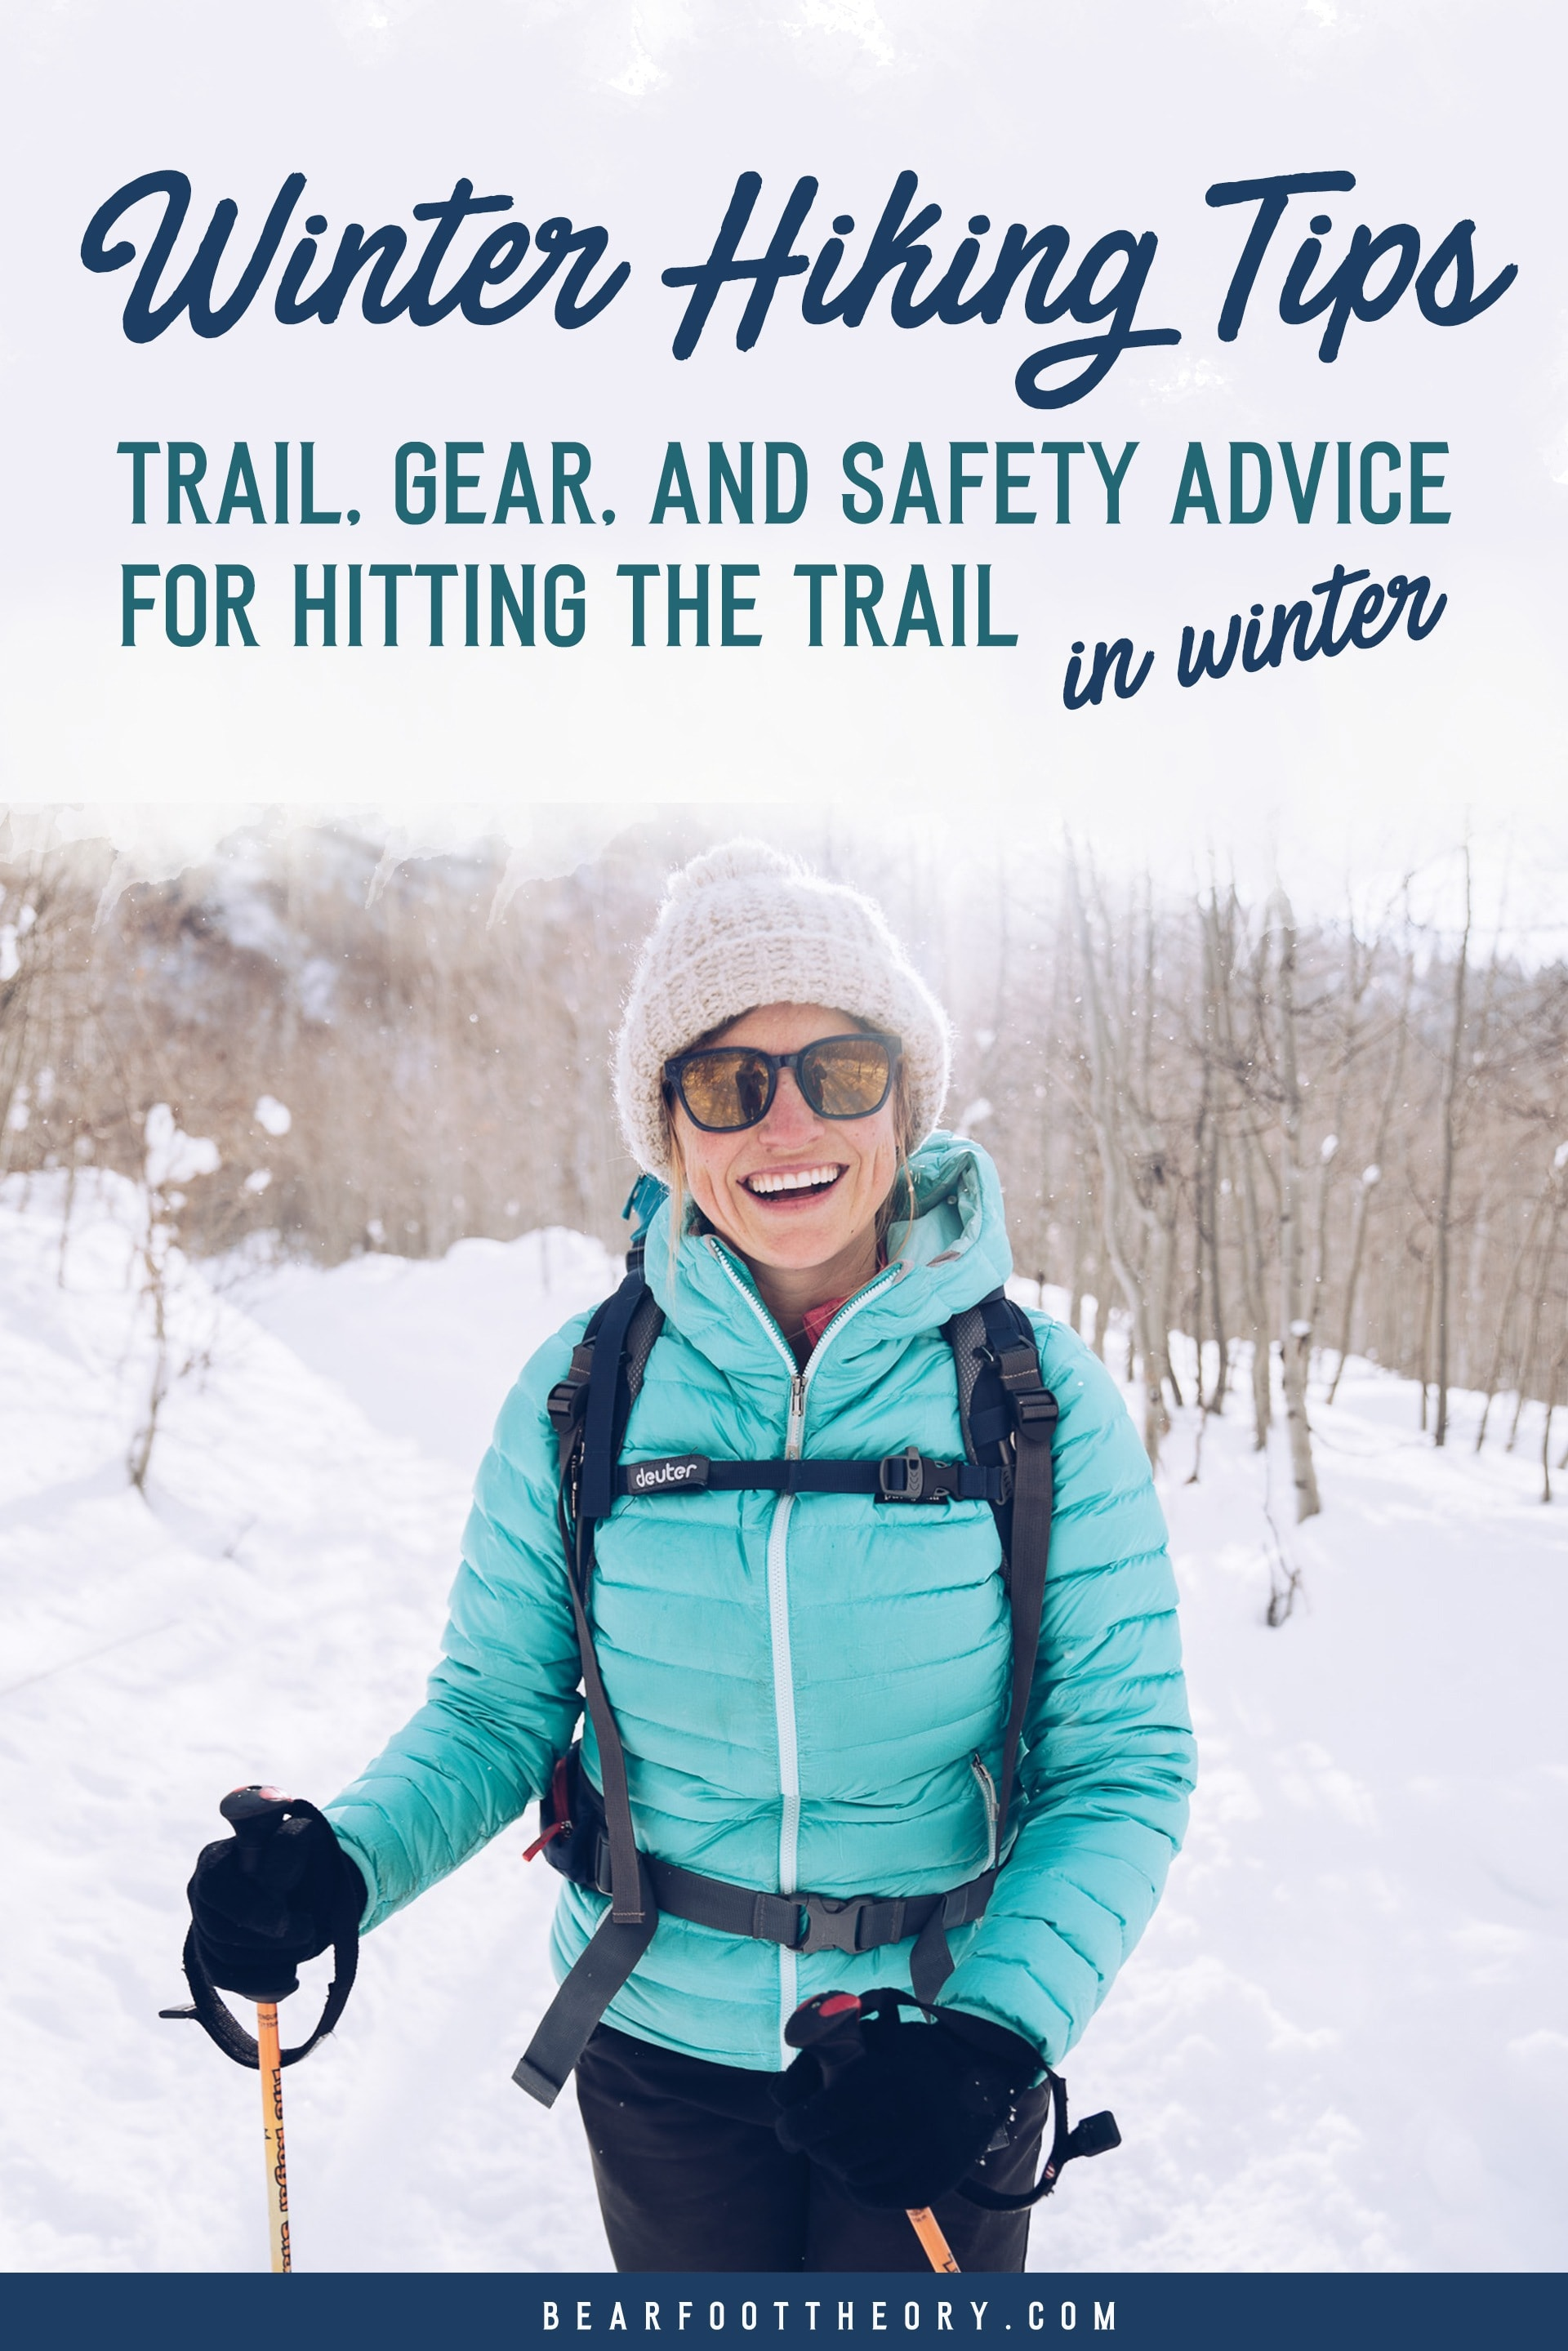 Learn our top winter hiking tips to keep you toasty and safe on cold and snowy trails, including advice on layering, snacks, staying hydrated & more.